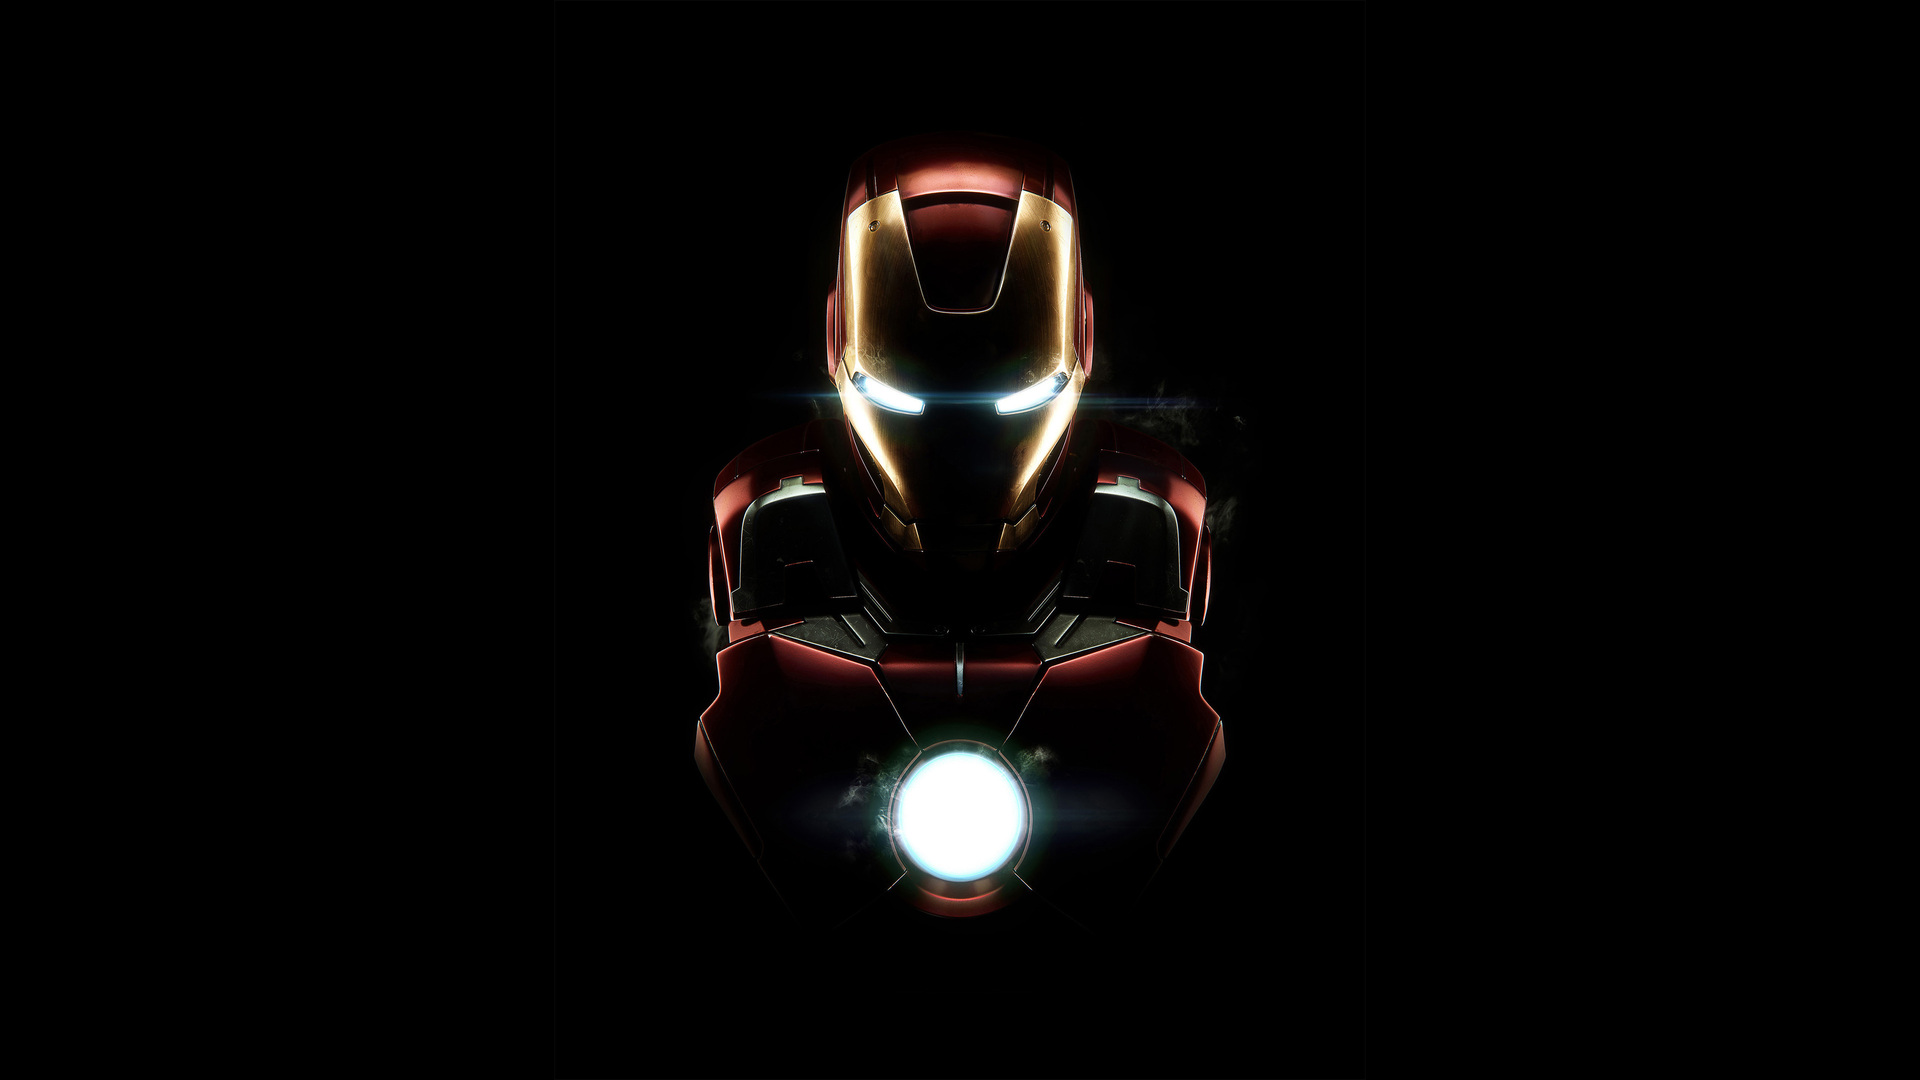 1920x1080 Iron Man Mkvii Laptop Full Hd 1080p Hd 4k